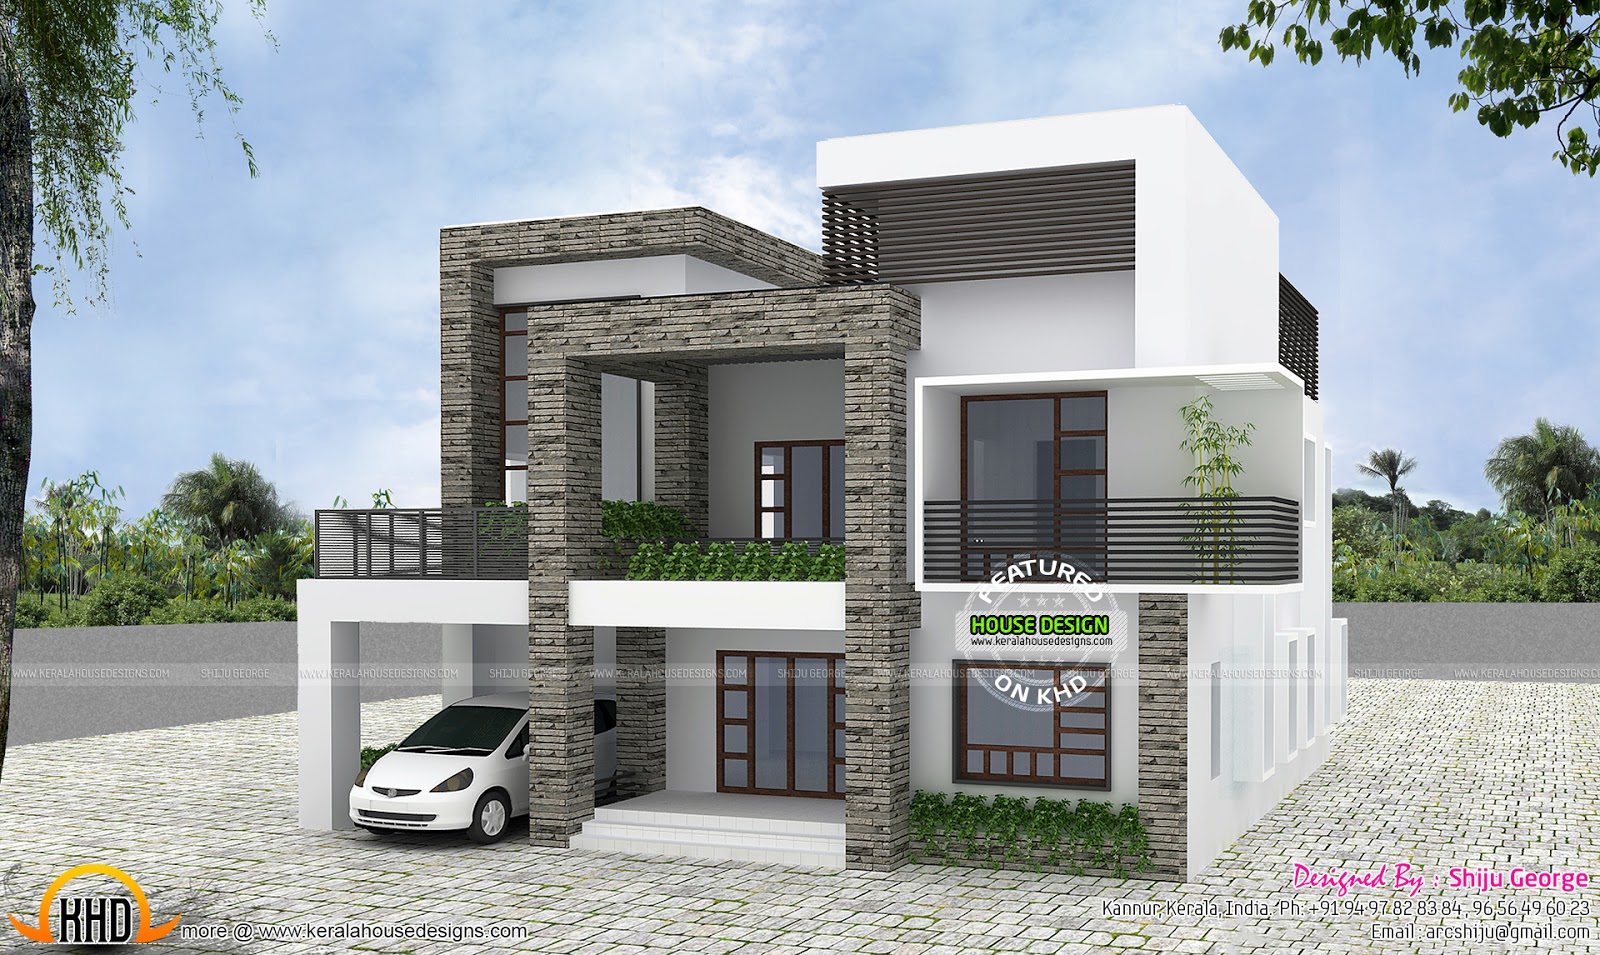 Contemporary house by shiju george home design simple for Home by design